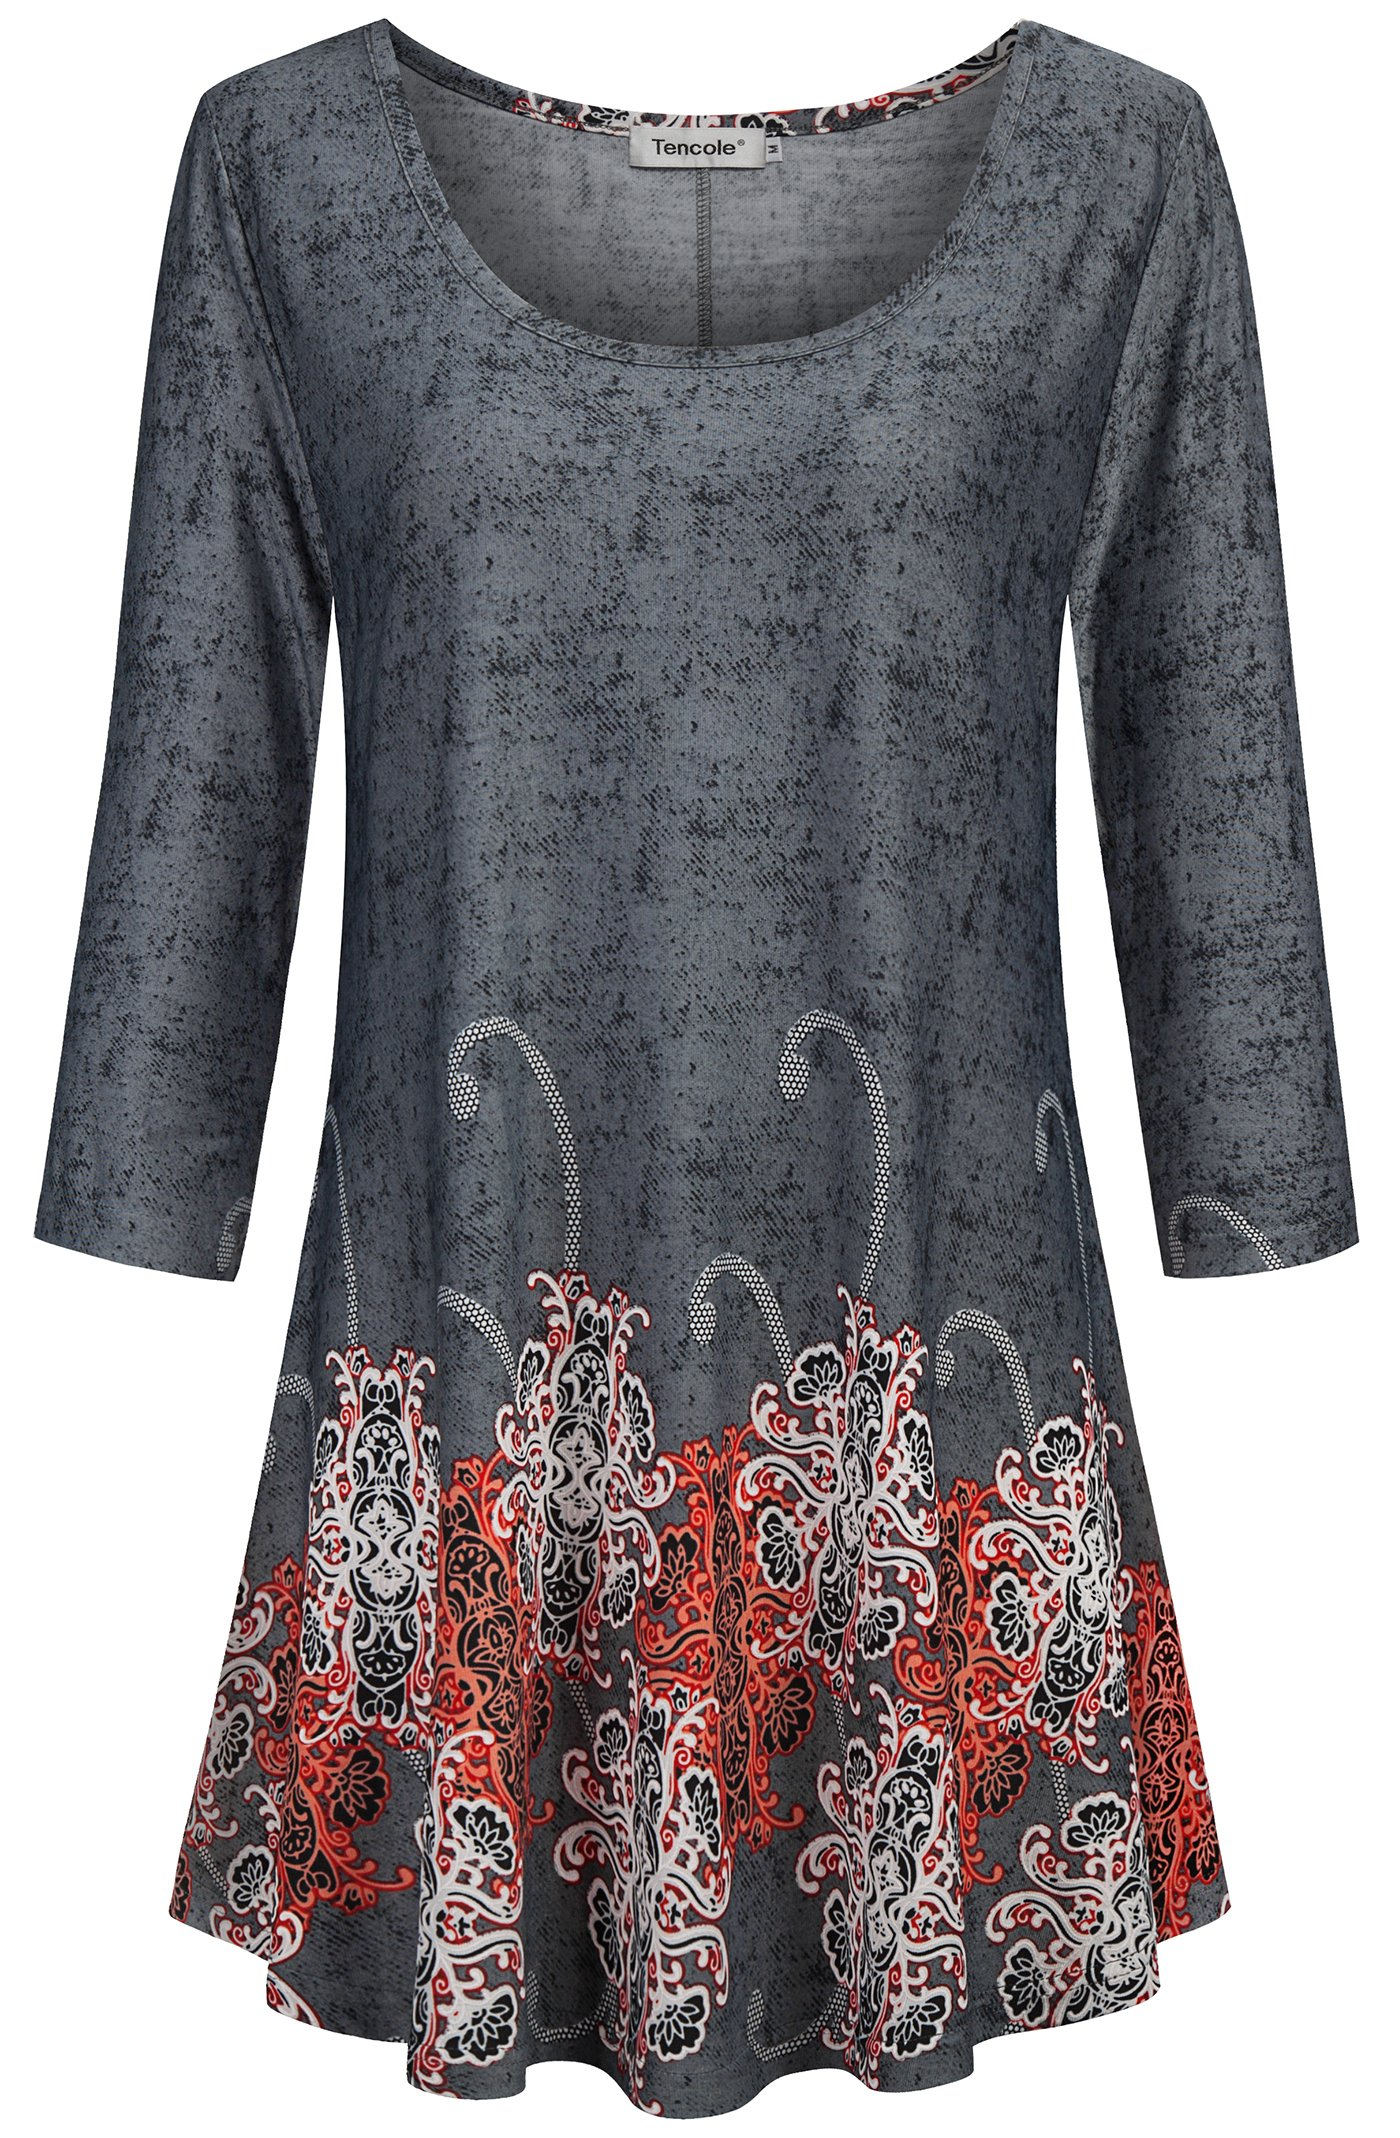 Tencole Tunic Shirts for Women, Lady Elegant Sexy Dressy Tops for Women Round Neck Bohemian Tops for Fall Large